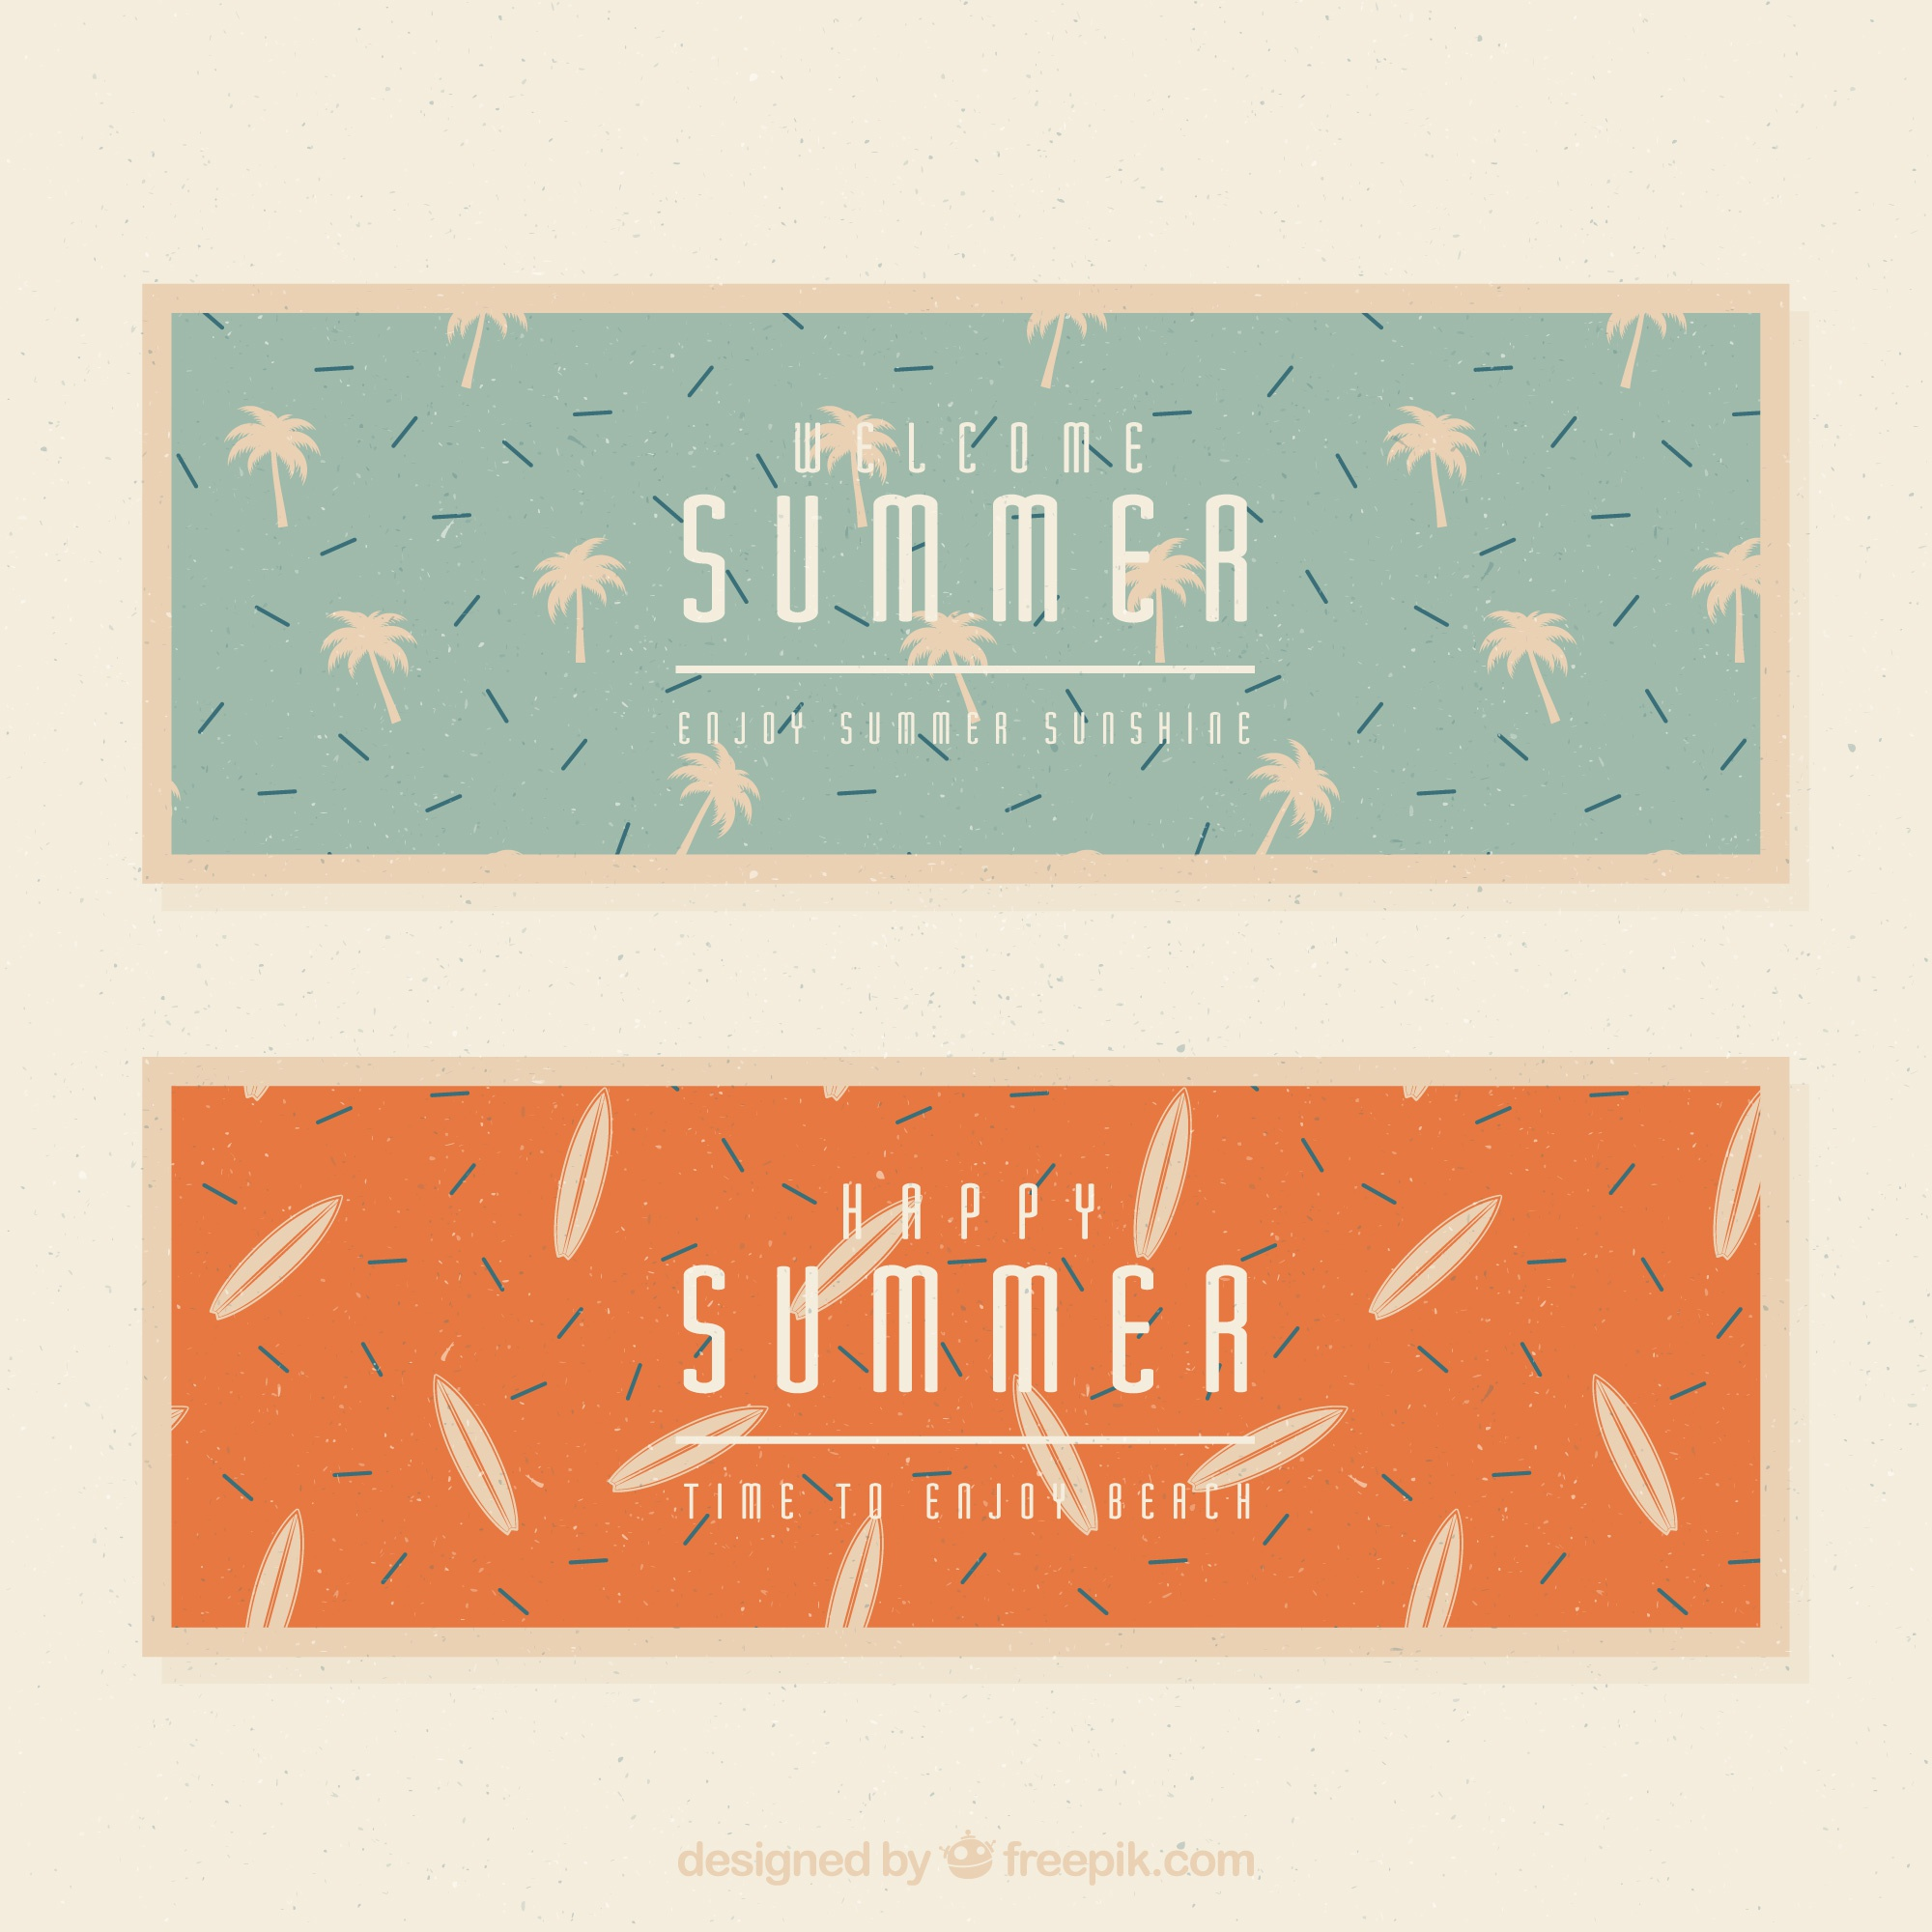 Banners with palm trees and surfboards in retro style